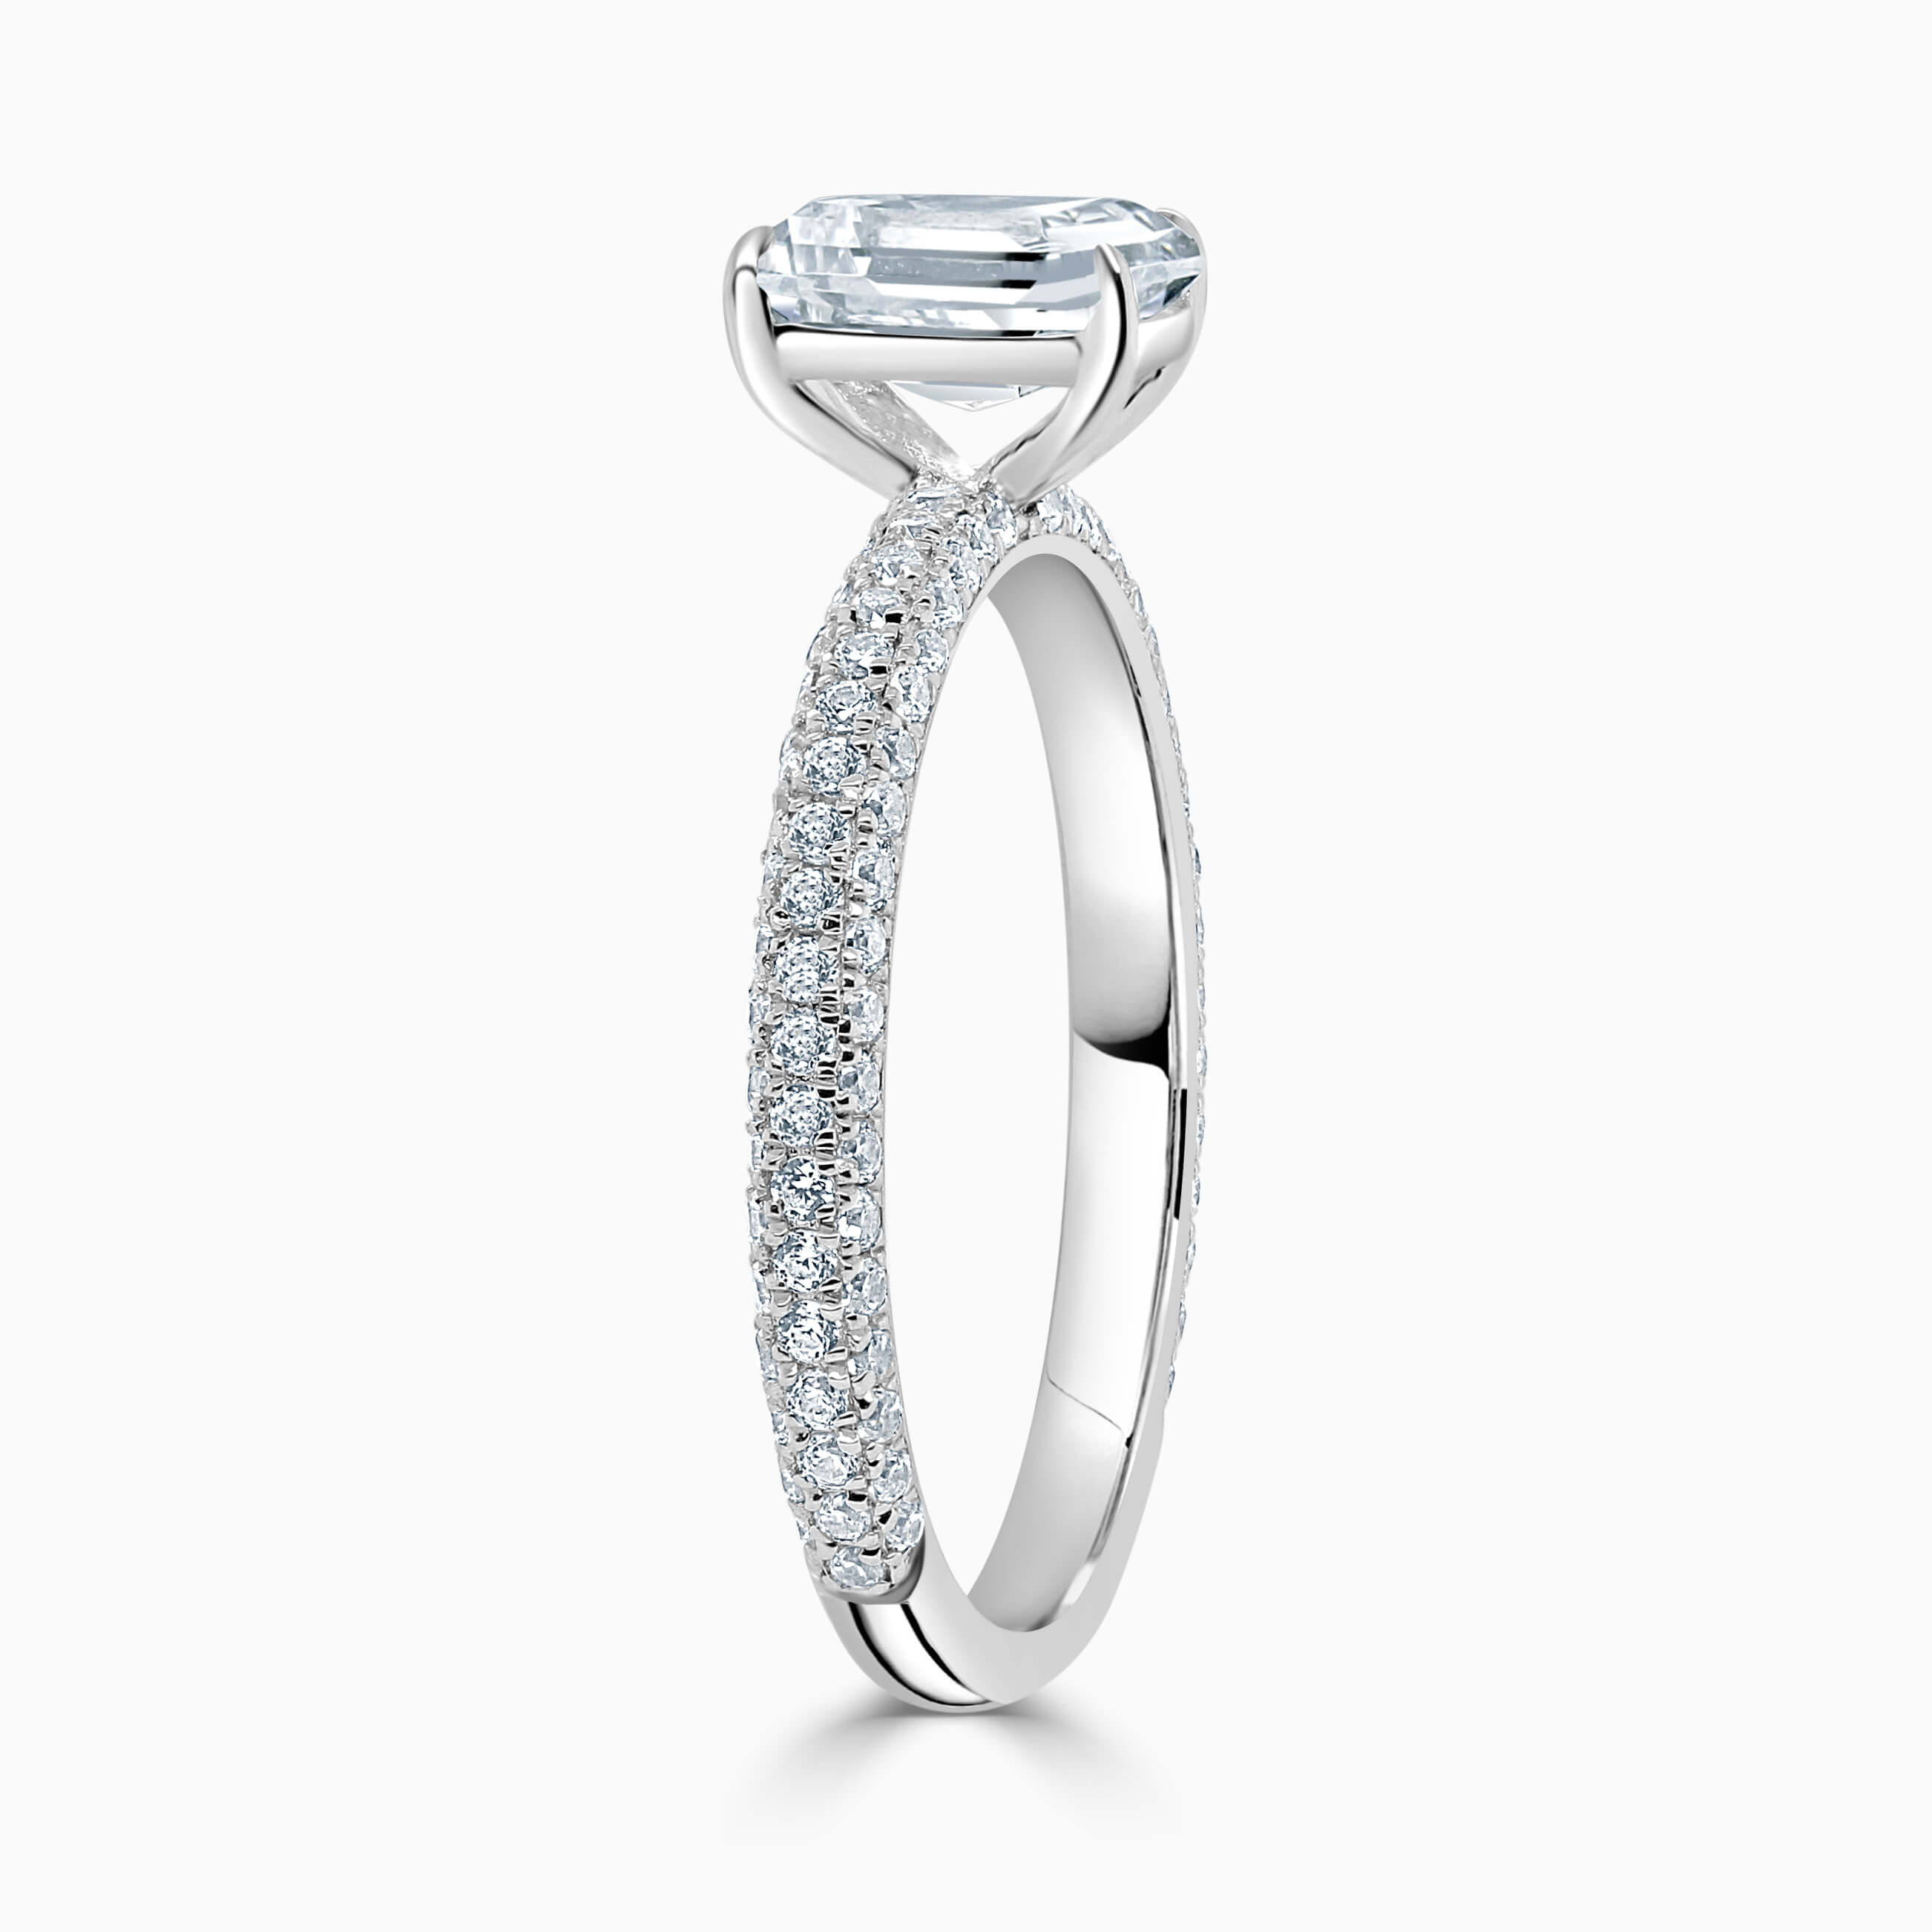 18ct White Gold Radiant Cut With Micro Pave Engagement Ring